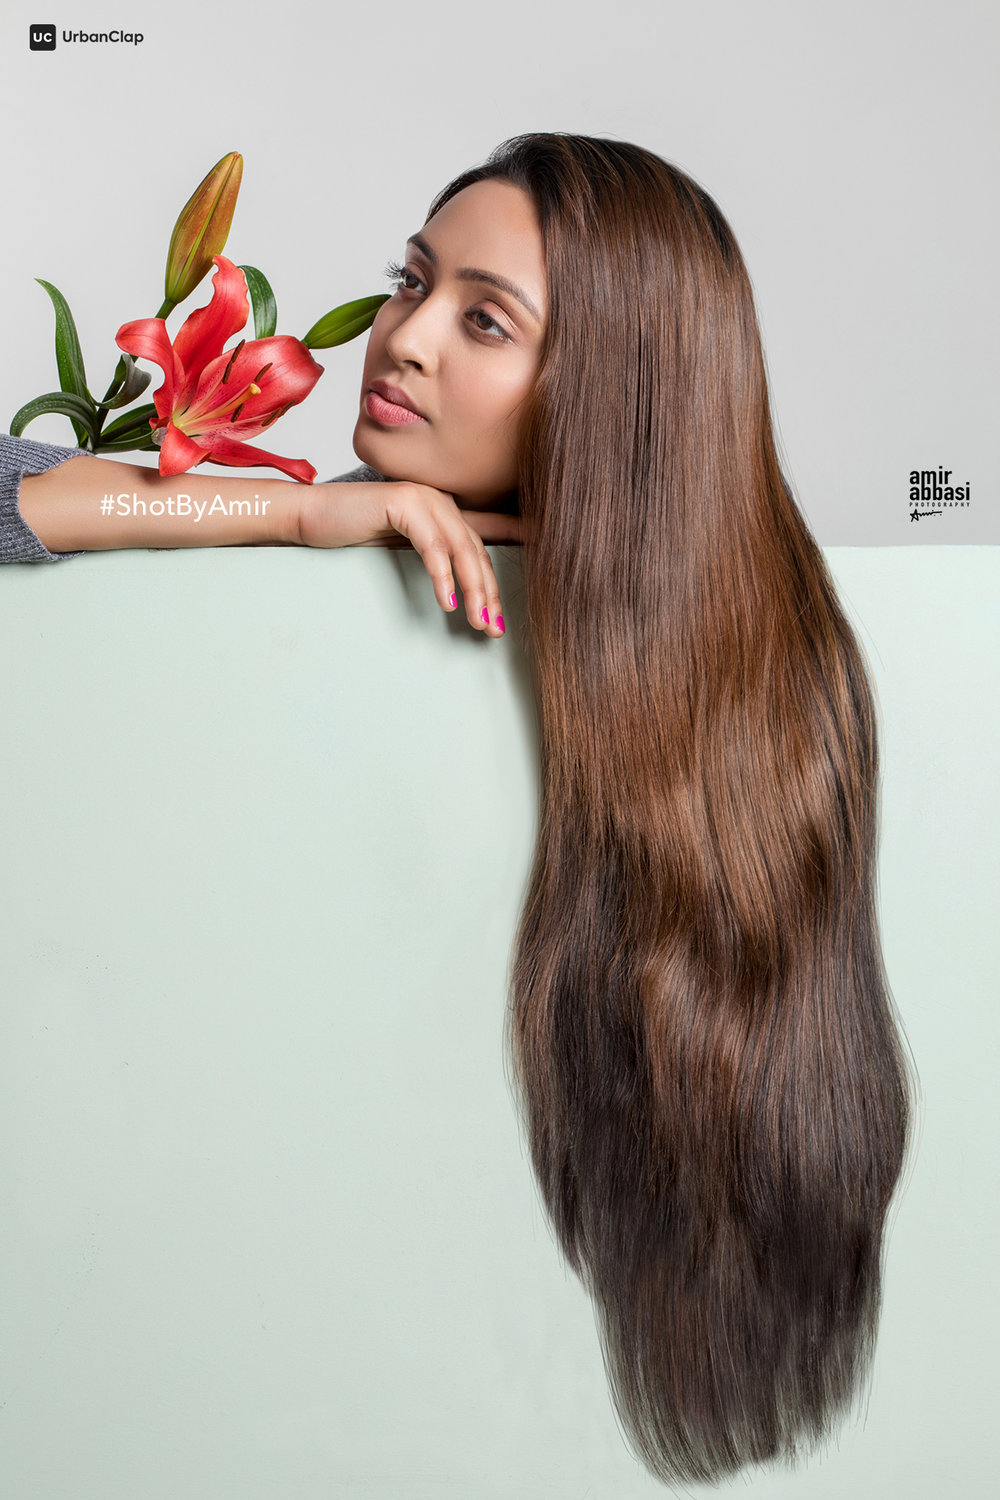 Creative Hair Shot | Model: Arshita Shrivastava | Photograher: Amir Abbasi | Makeup: Govind Gupta